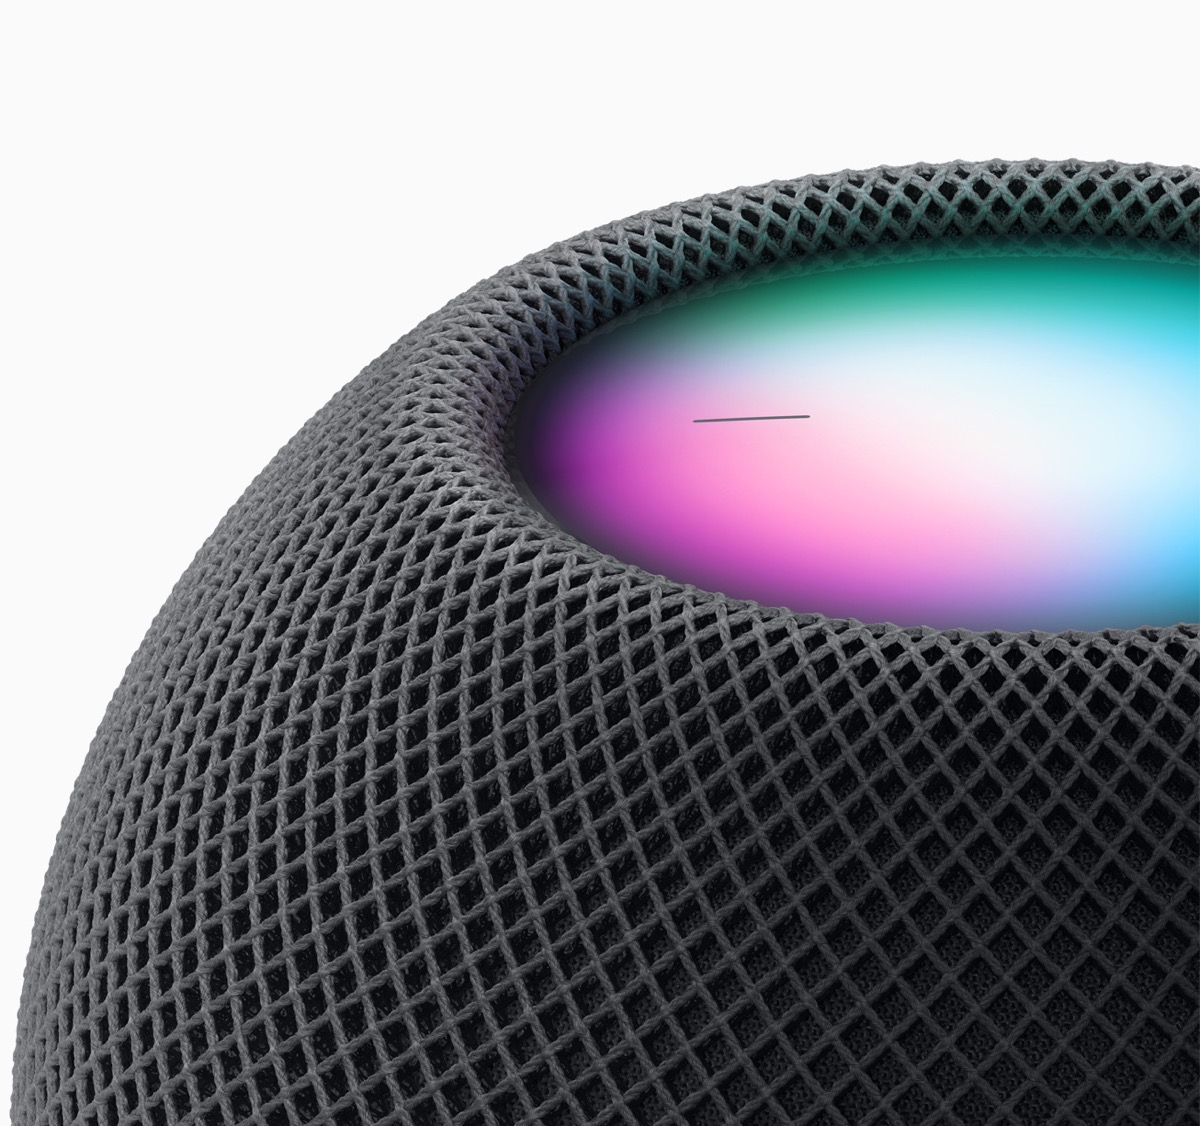 Apple homepod mini space gray close up 10132020